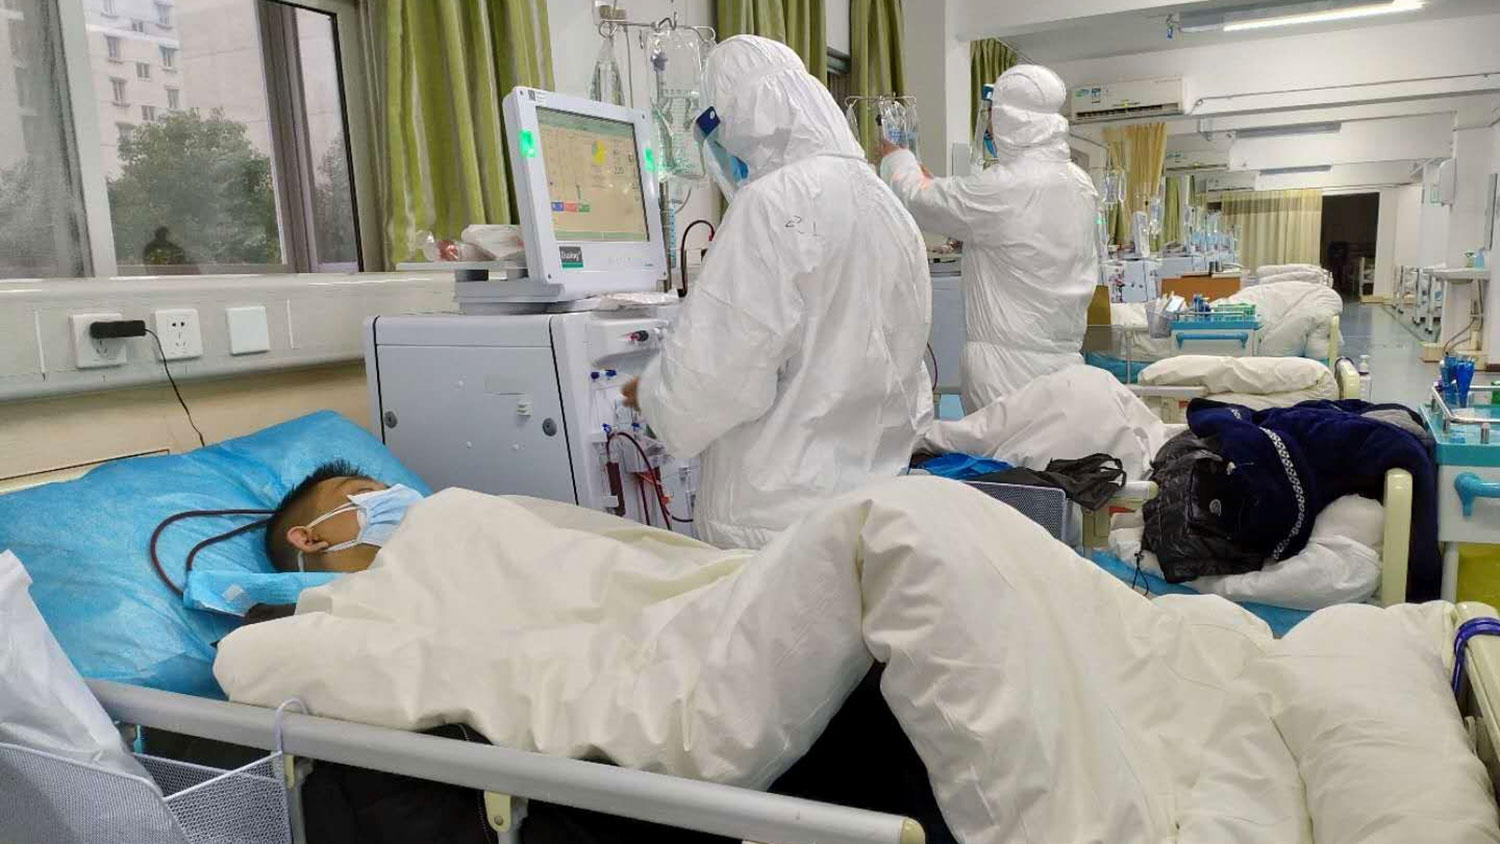 Medical staff of Wuhan Central Hospital treat patients with virus infection, Jan. 25, 2020. (Reuters)